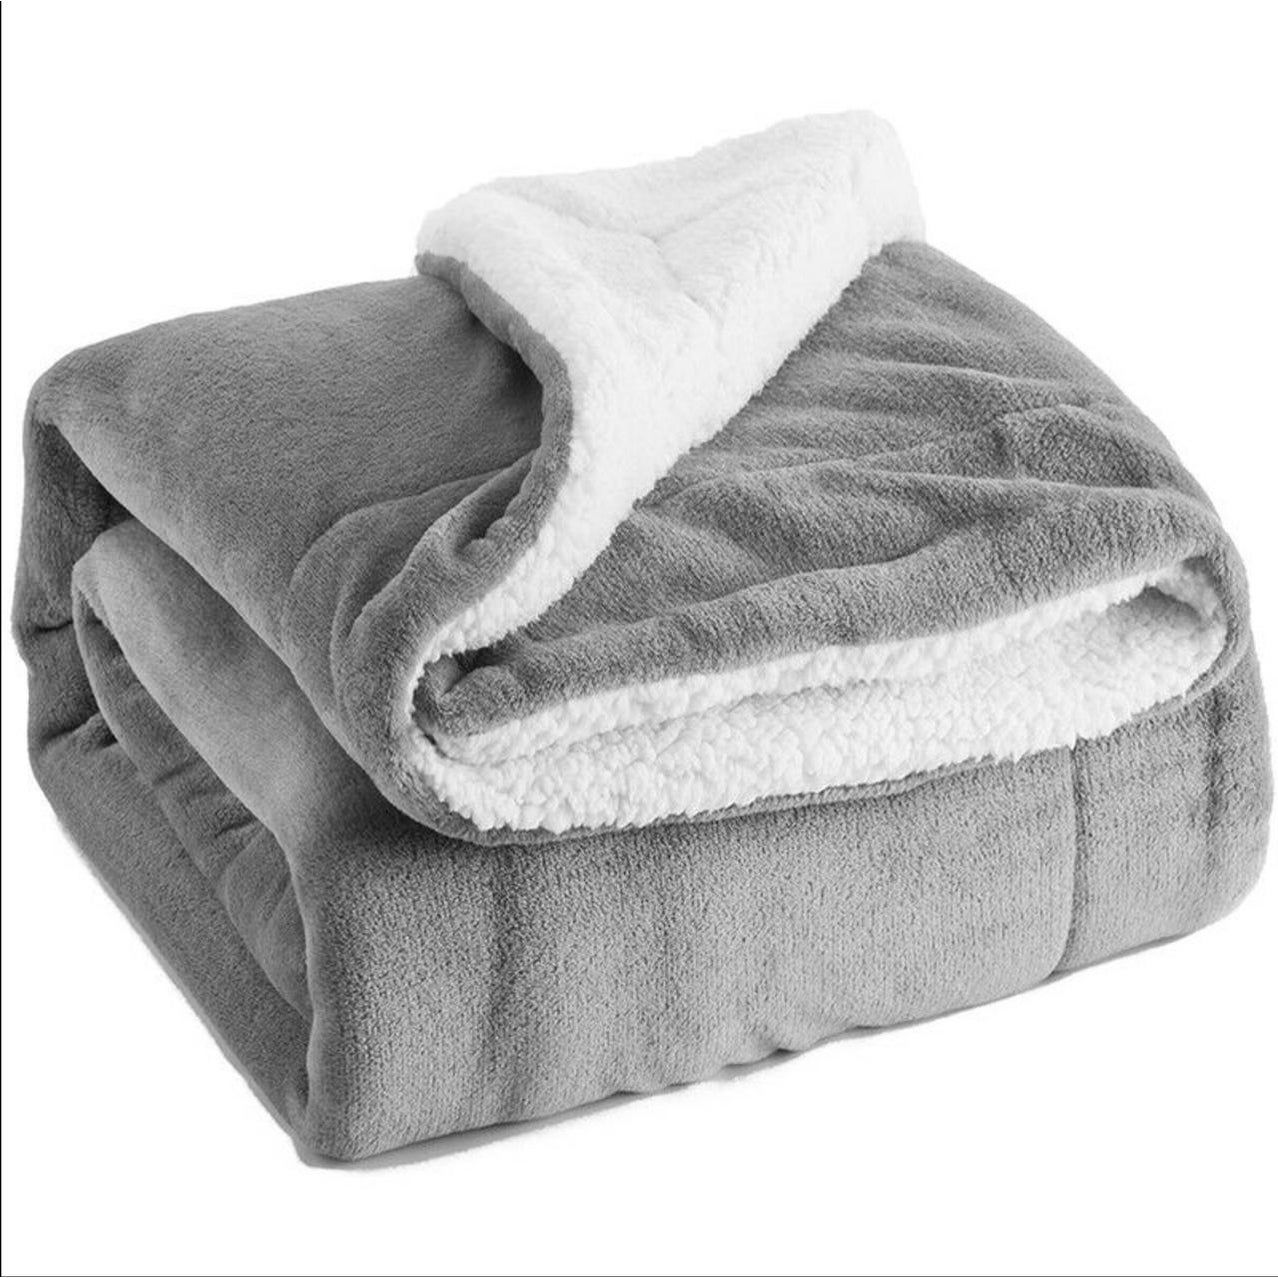 Super Warm Soft Cozy Plush Stitched Bed Sofa Couch Blanket Throw